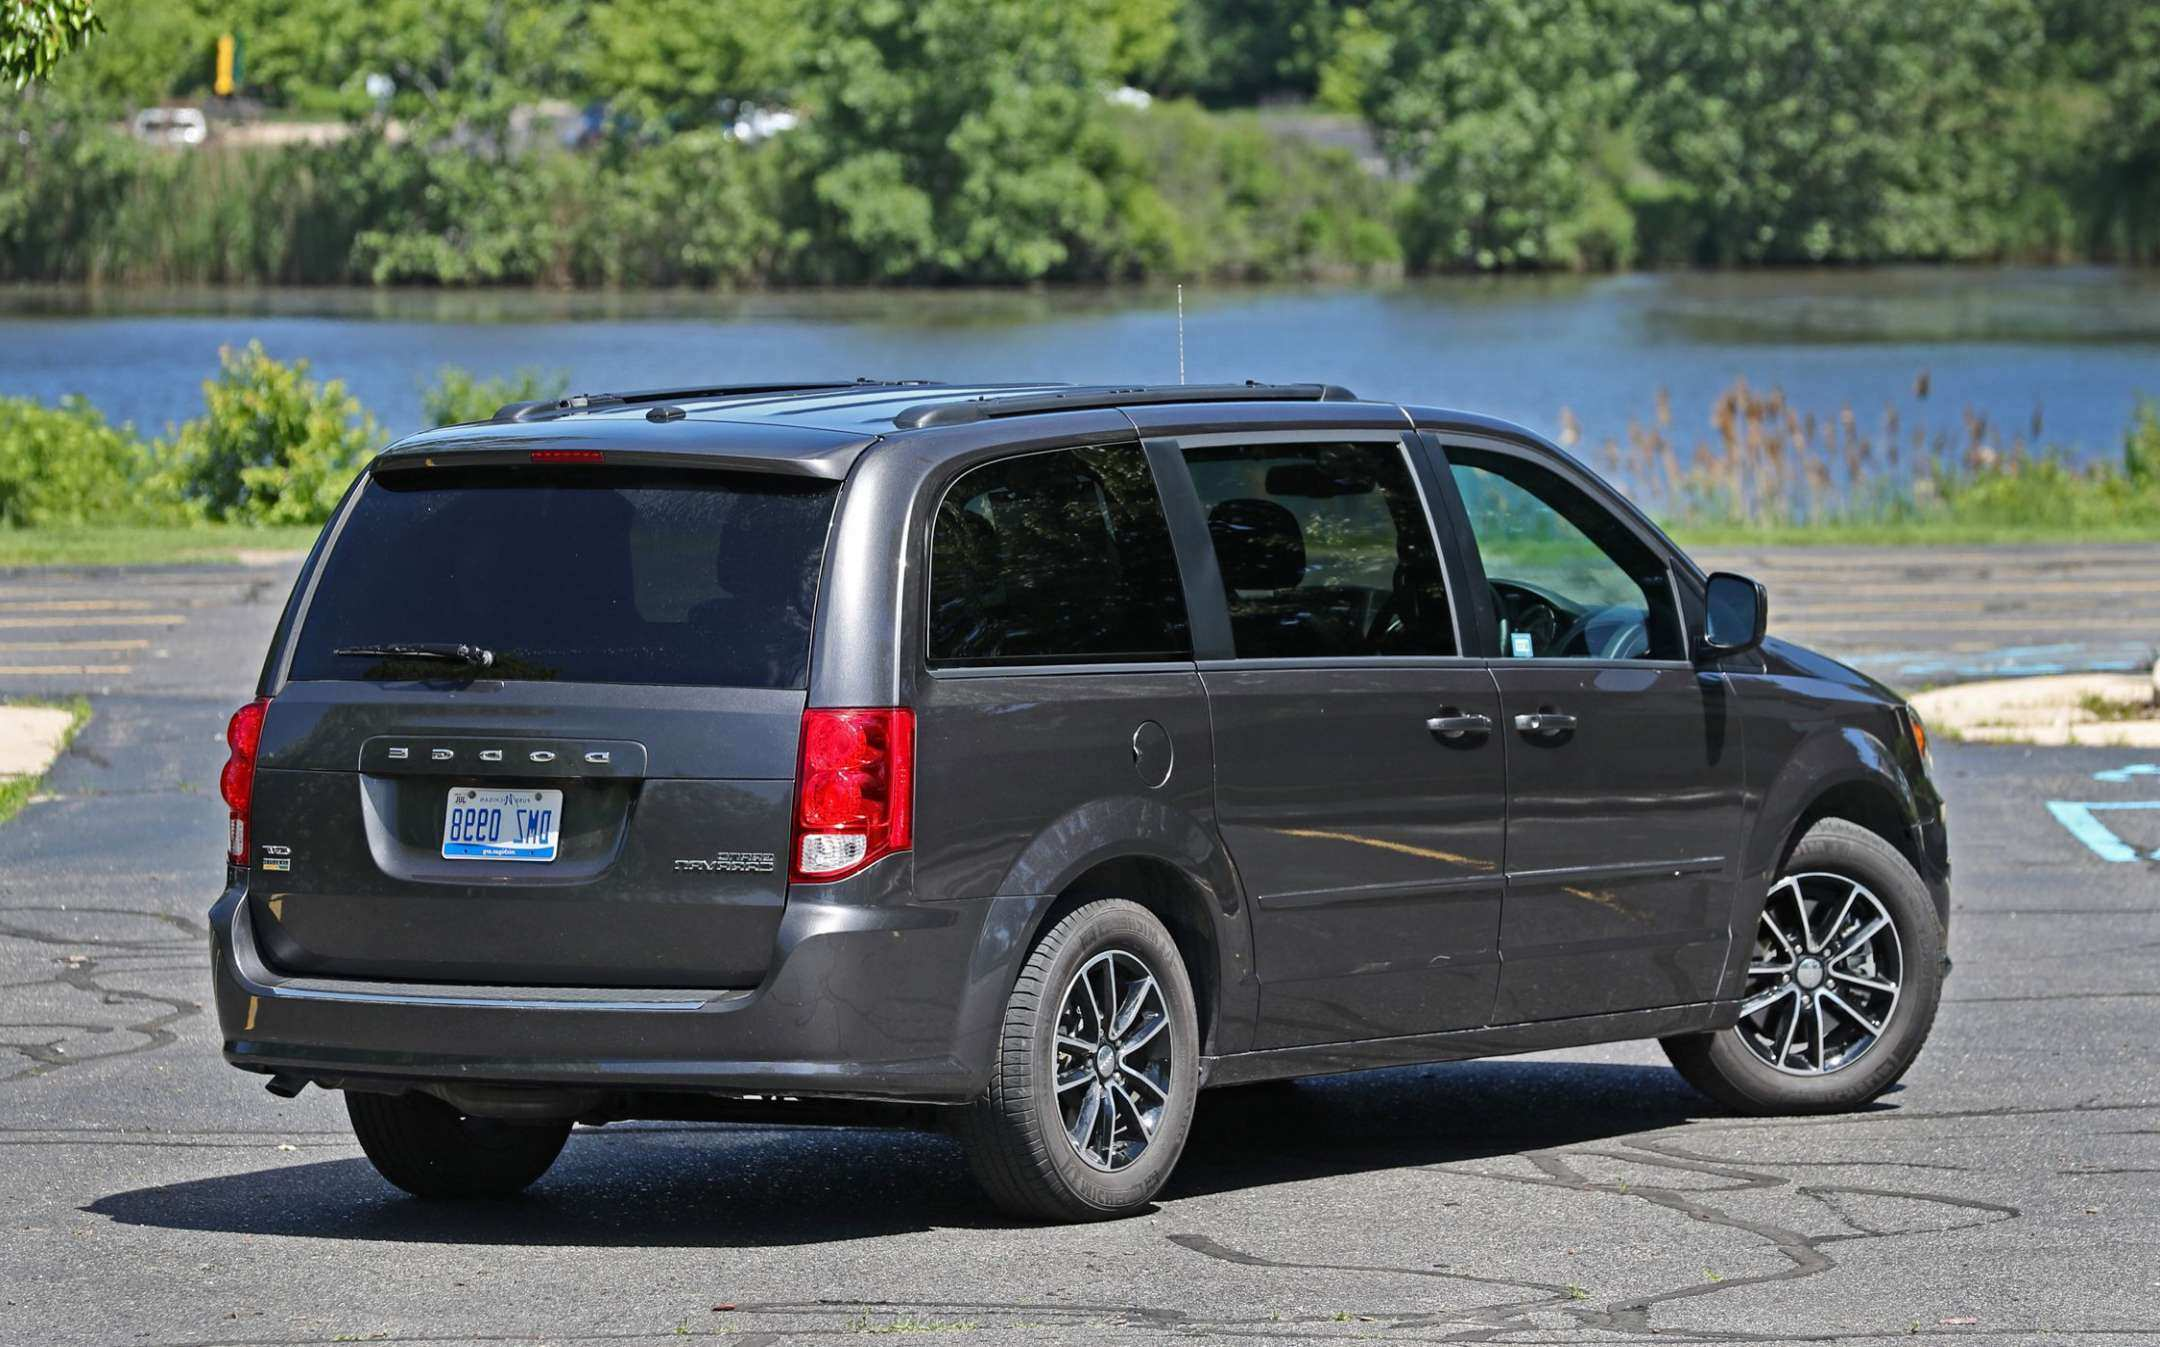 40 Great 2020 Dodge Van New Review by 2020 Dodge Van